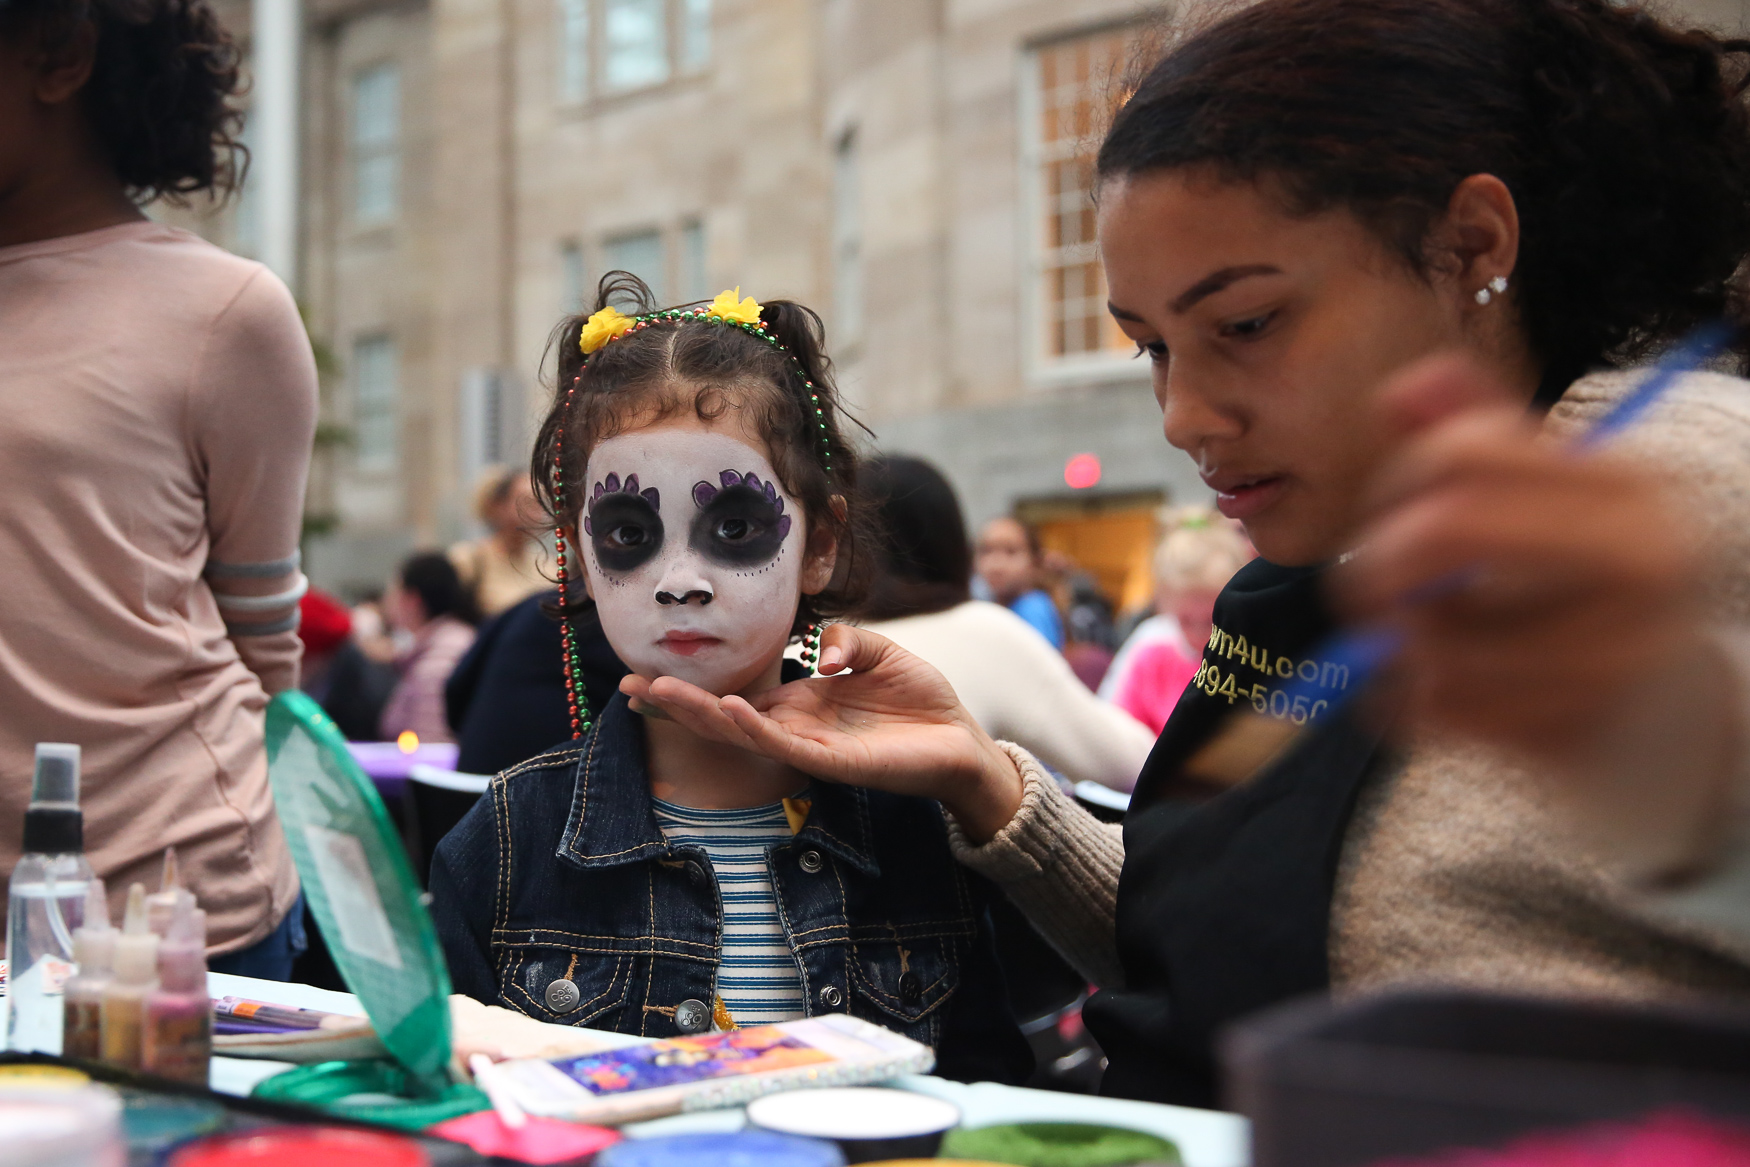 Día de los Muertos, the Day of the Dead, is a primarily Mexican holiday meant as a way to remember and honor the dead. However, the National Portrait Gallery brought that tradition to Washingtonians. On November 1,  guests had the chance to watch folklórico dancers dance across the Kogod Courtyard in Dia de los Muertos face paint, try out traditional Mexican snacks and have their faces painted like traditional sugar skulls. Some people also placed offerings and memorabilia of those who have passed at a traditional altar honoring the dead. (Amanda Andrade-Rhoades/DC Refined)